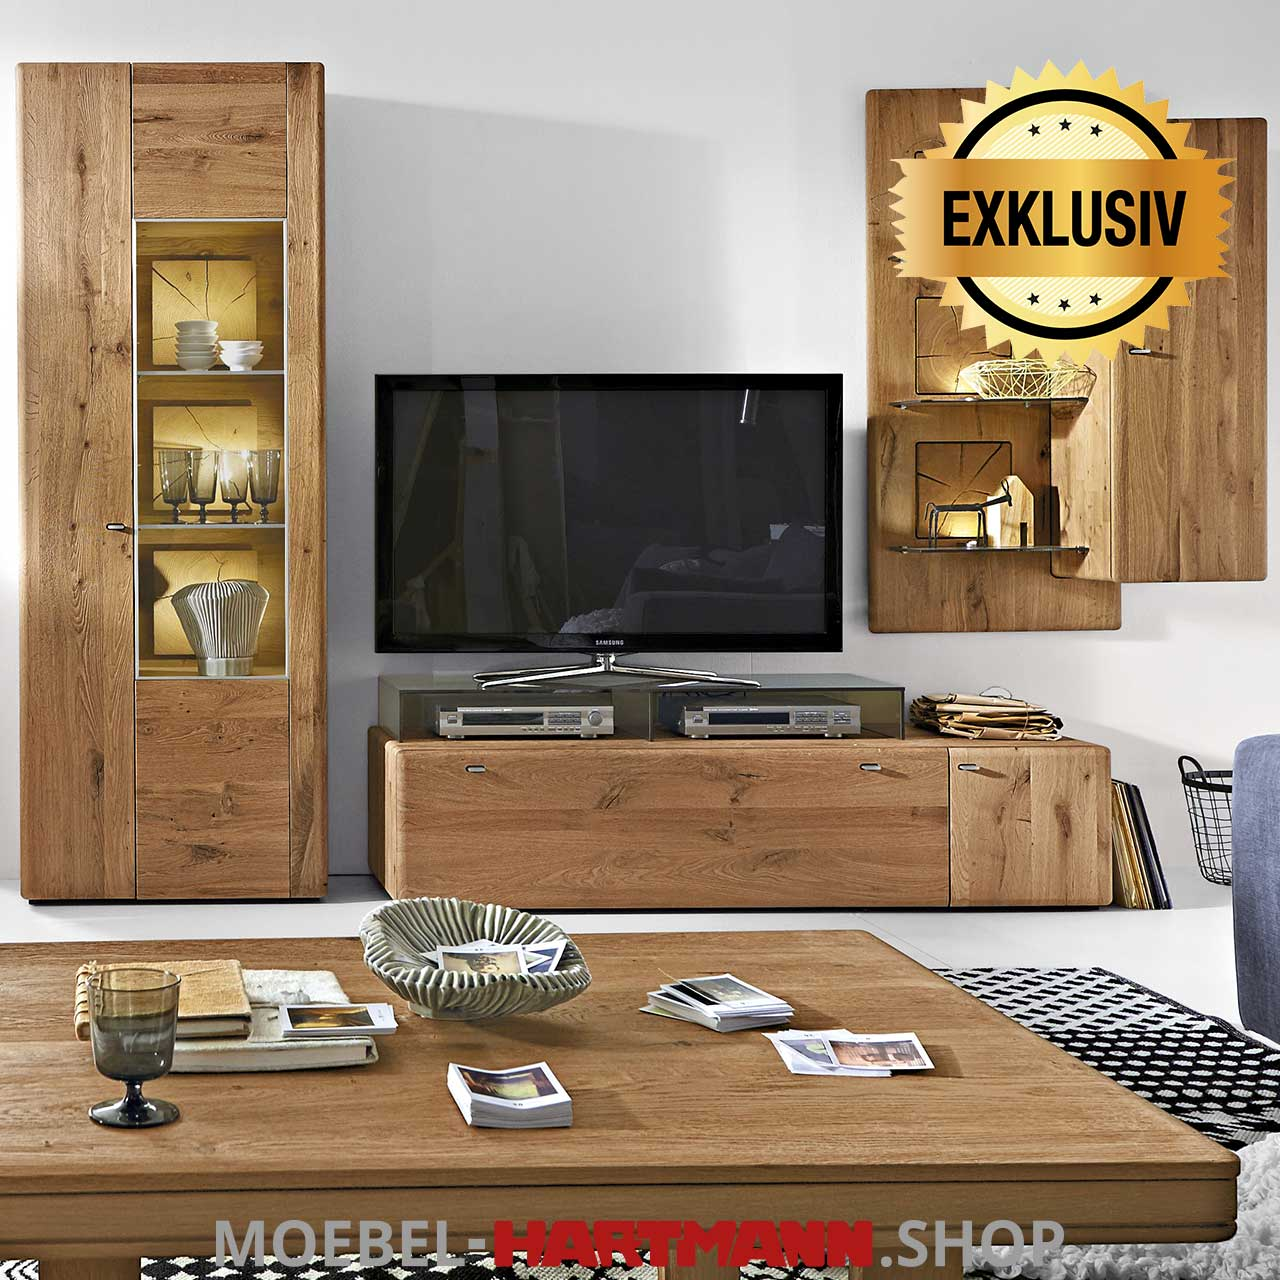 wohnen hartmann m bel g nstig kaufen moebel. Black Bedroom Furniture Sets. Home Design Ideas